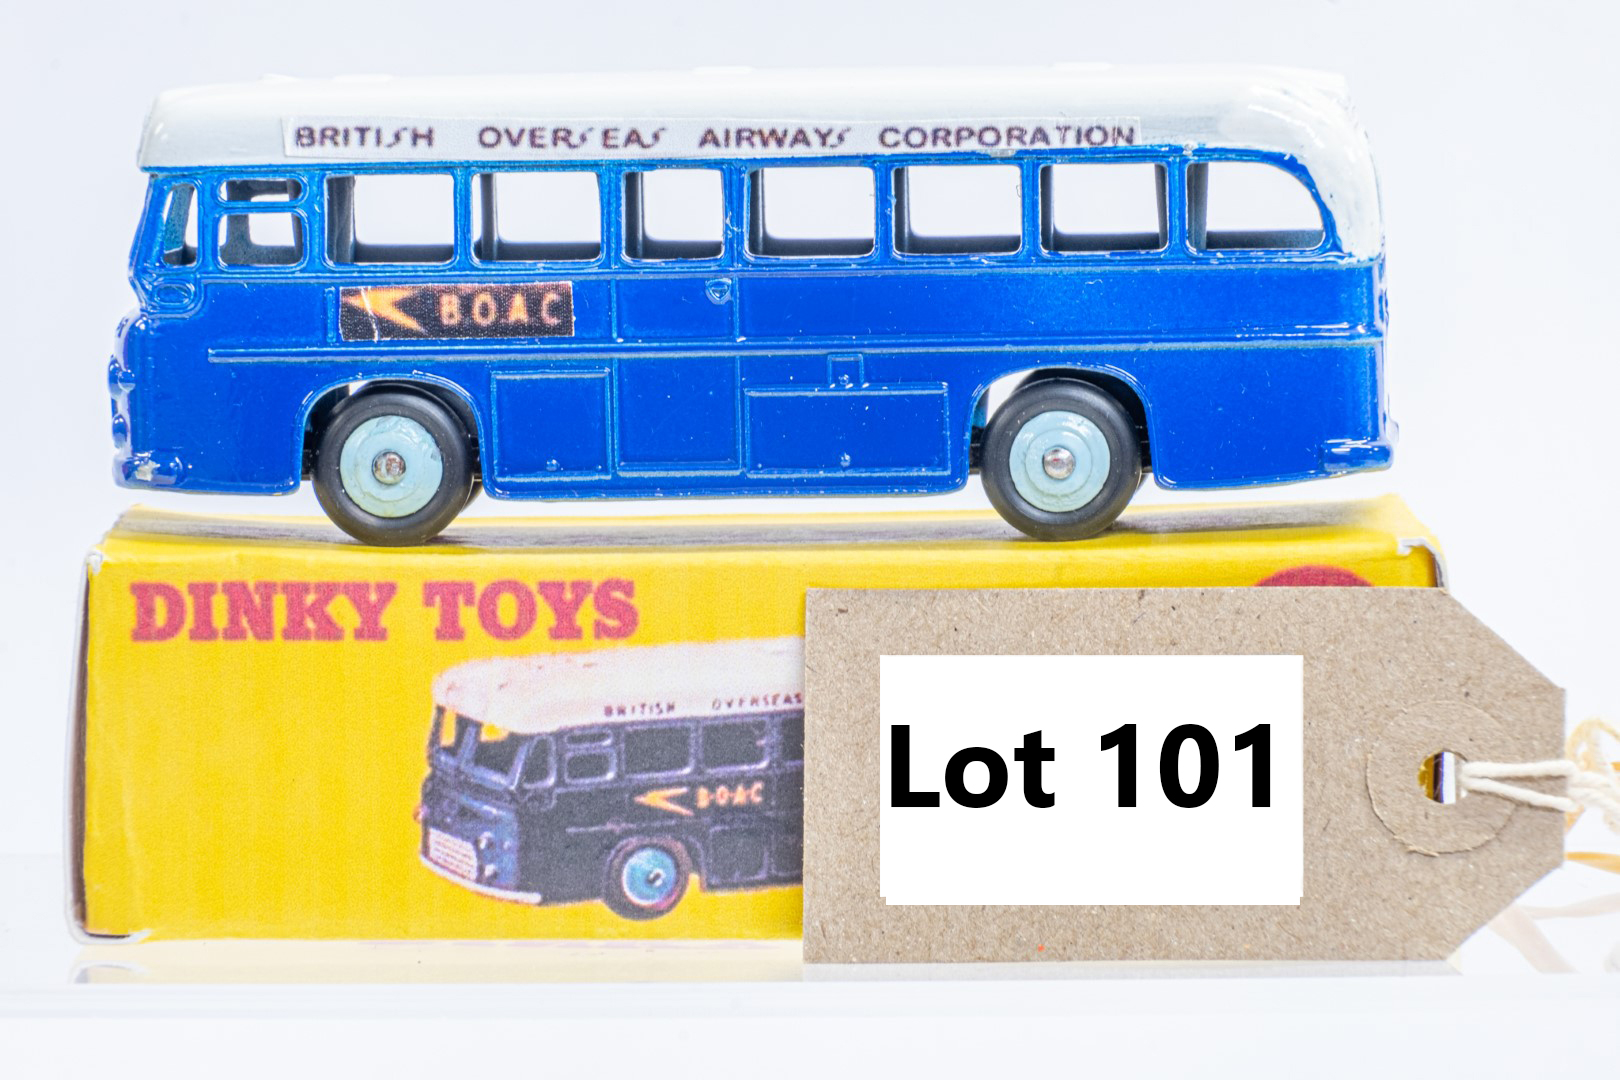 Dinky Single Decker Bus - B.O.A.C. - Code 3 & Reproduction Box - Image 4 of 7